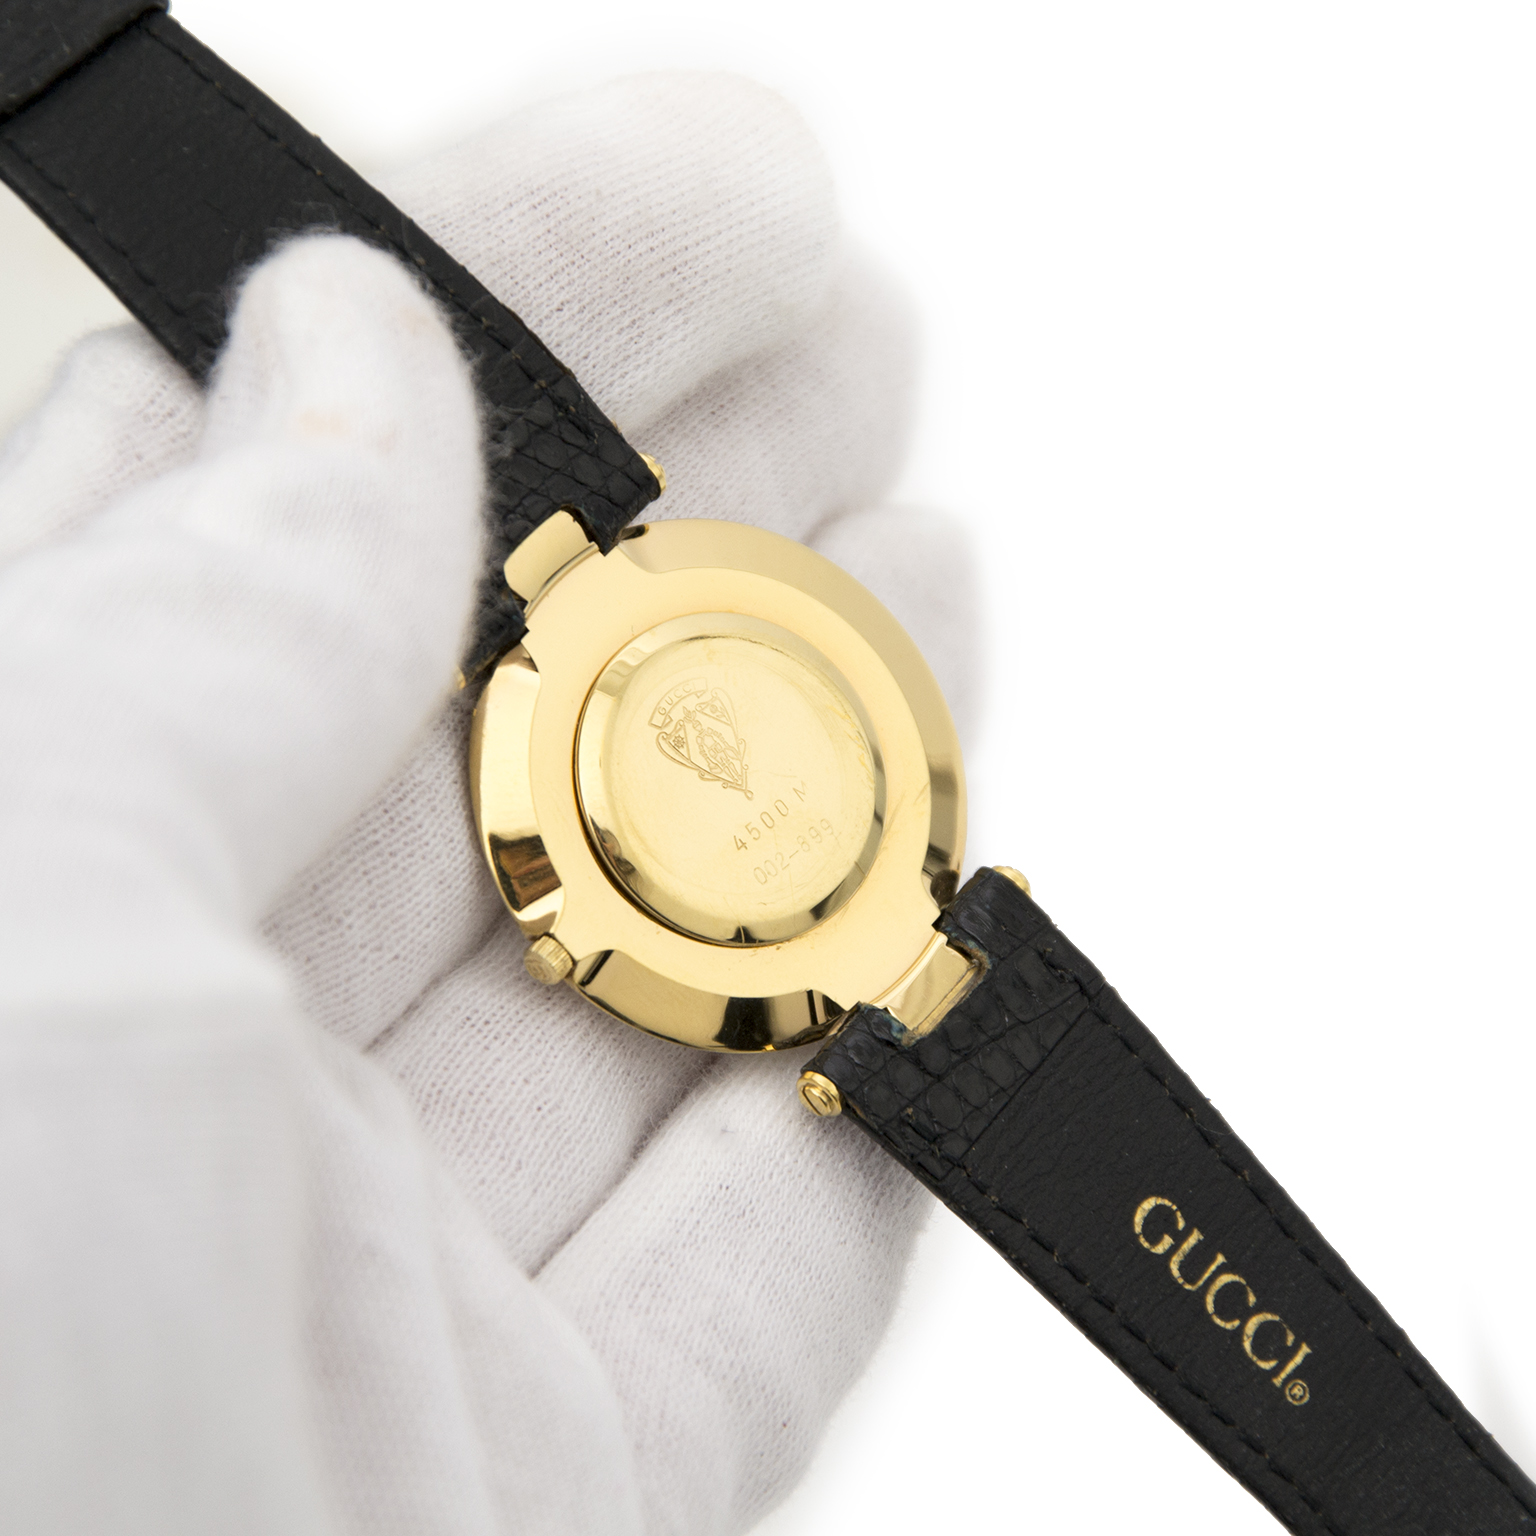 Buy now safe and secure a real gold plated Gucci watch on www.labellov.com